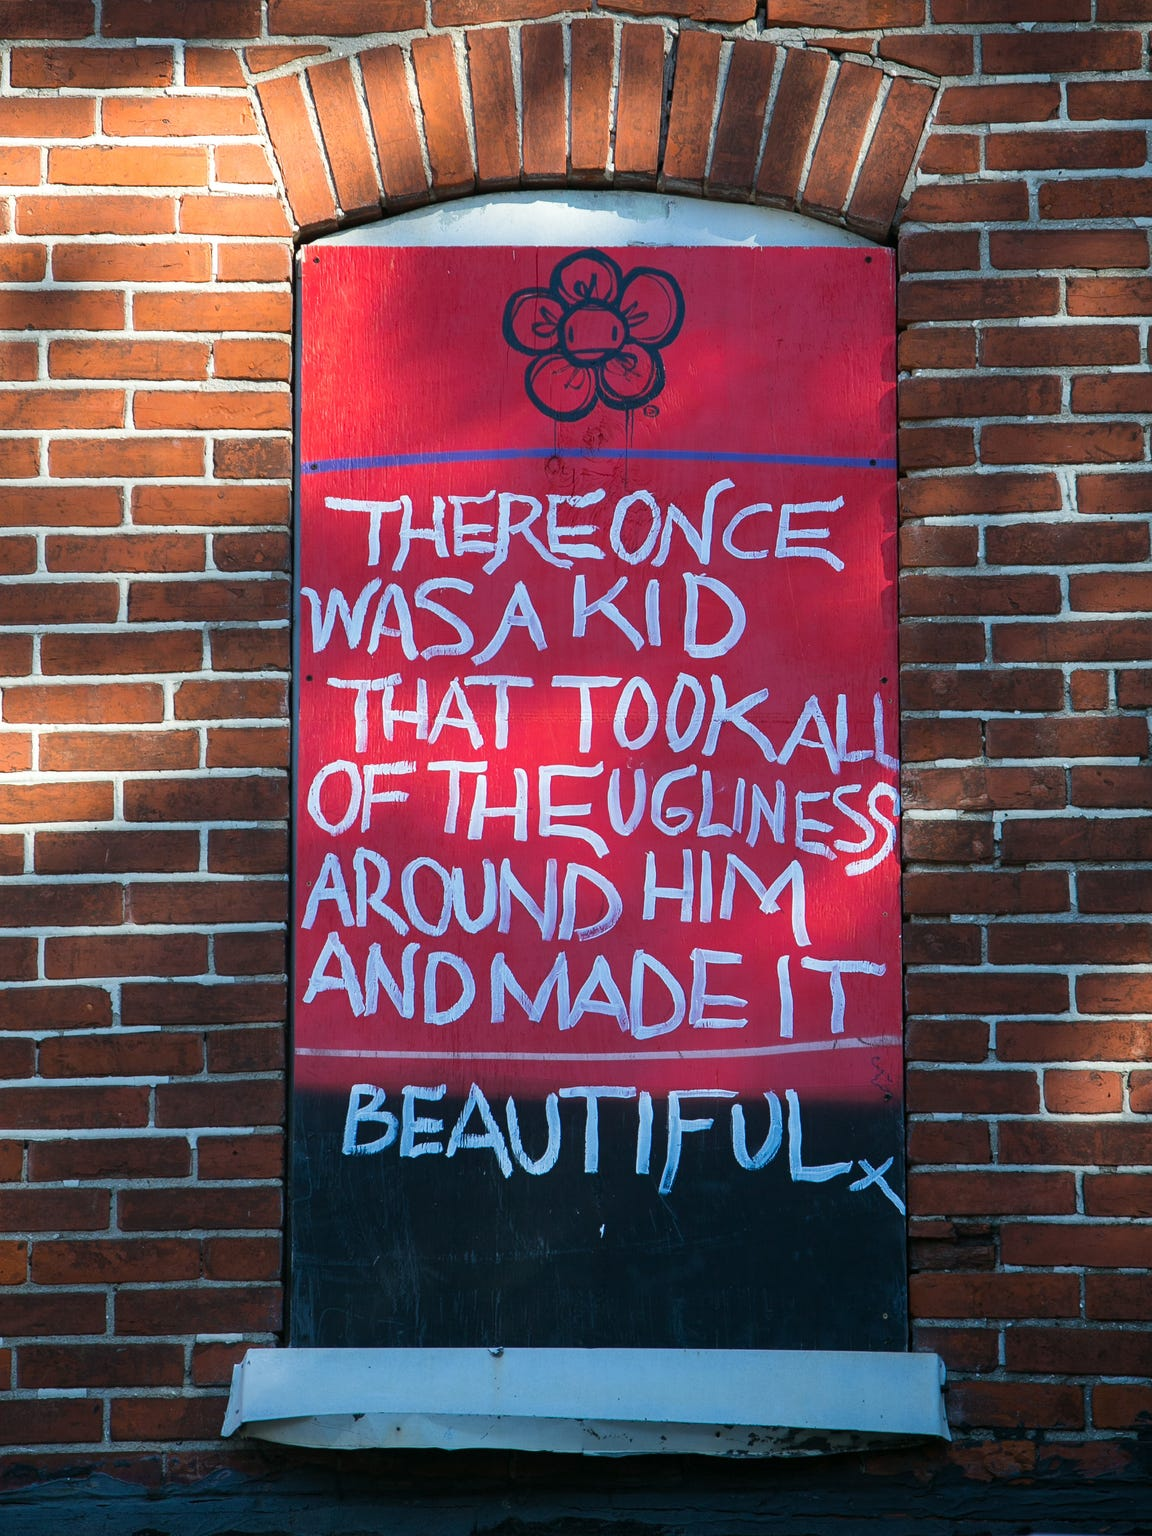 Community art brightens a vacant building in Southbridge.